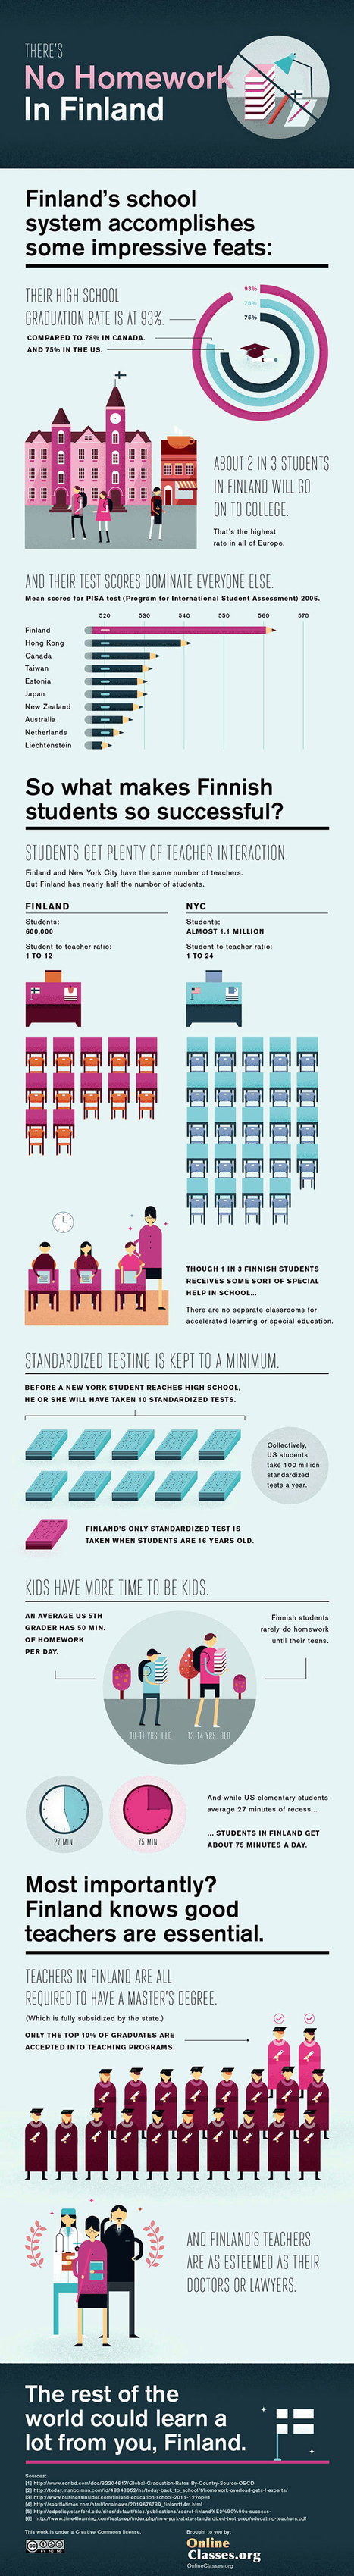 Finland's School System - Infographic | Emerging Classroom | Scoop.it